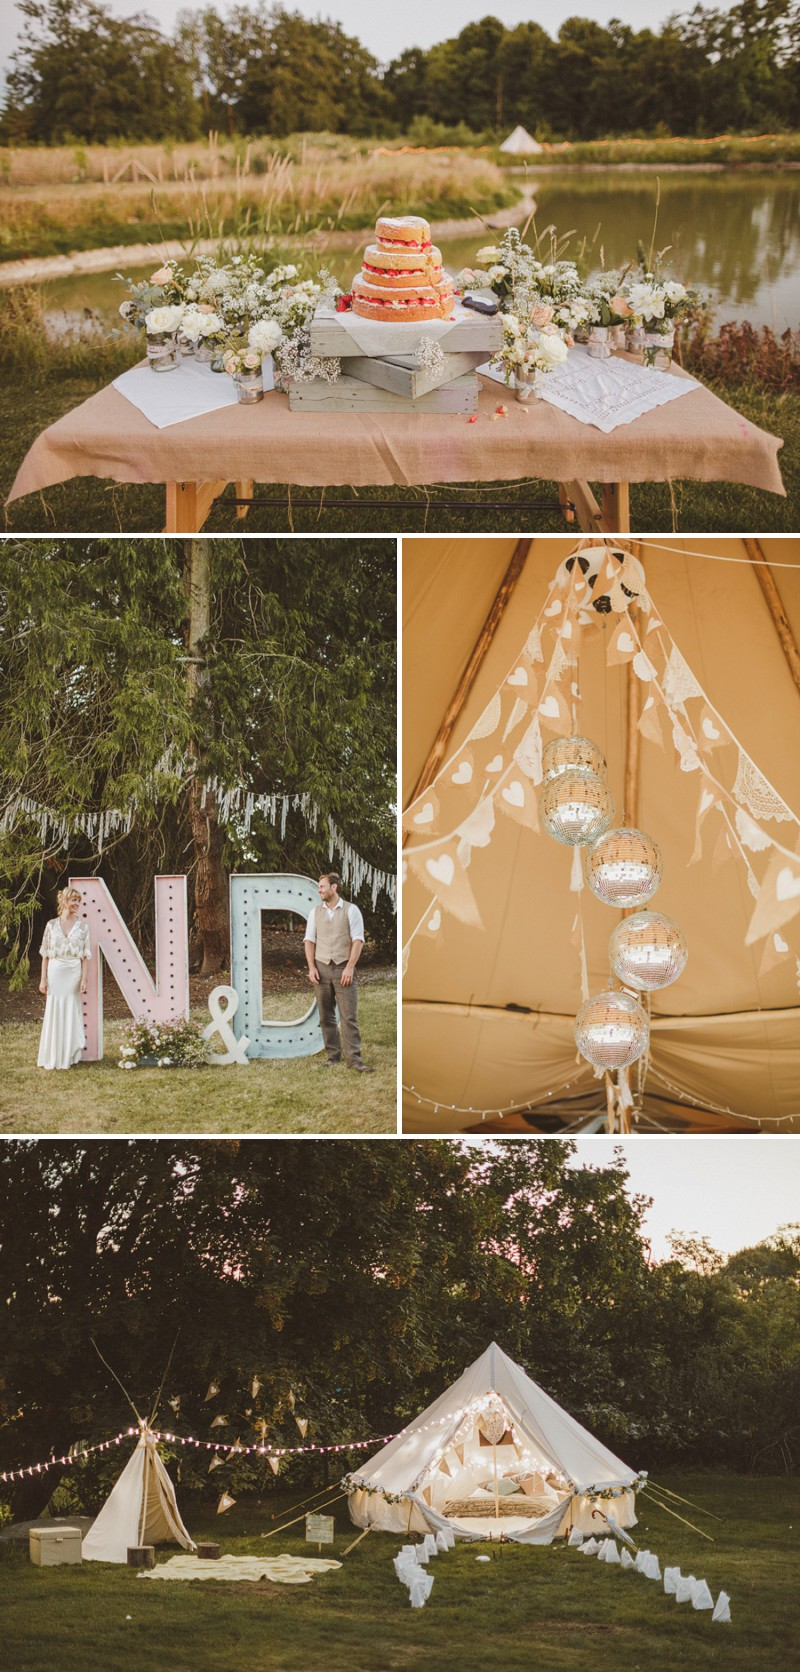 An Epic DIY Bohemian Wedding At Ratfyn Farm With A Jenny Packham Dress And A Humanist Ceremony And A Peach Colour Scheme Photographed By Ed Peers._0008